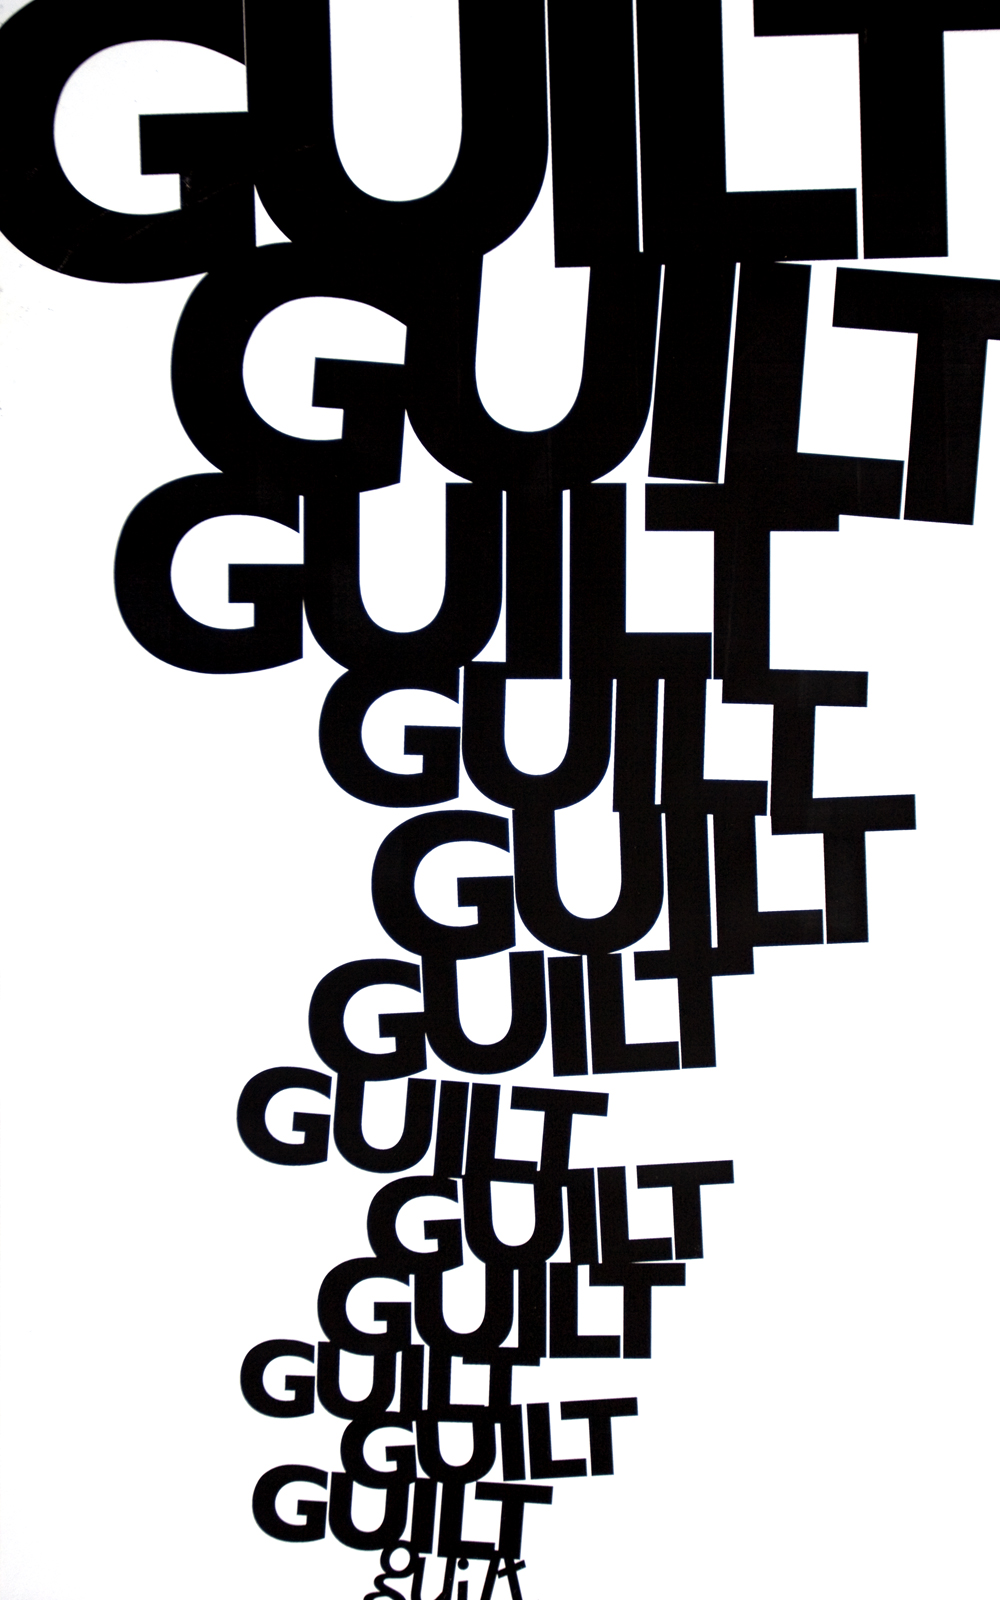 Guilt i know i m forgiven but guilt continues to